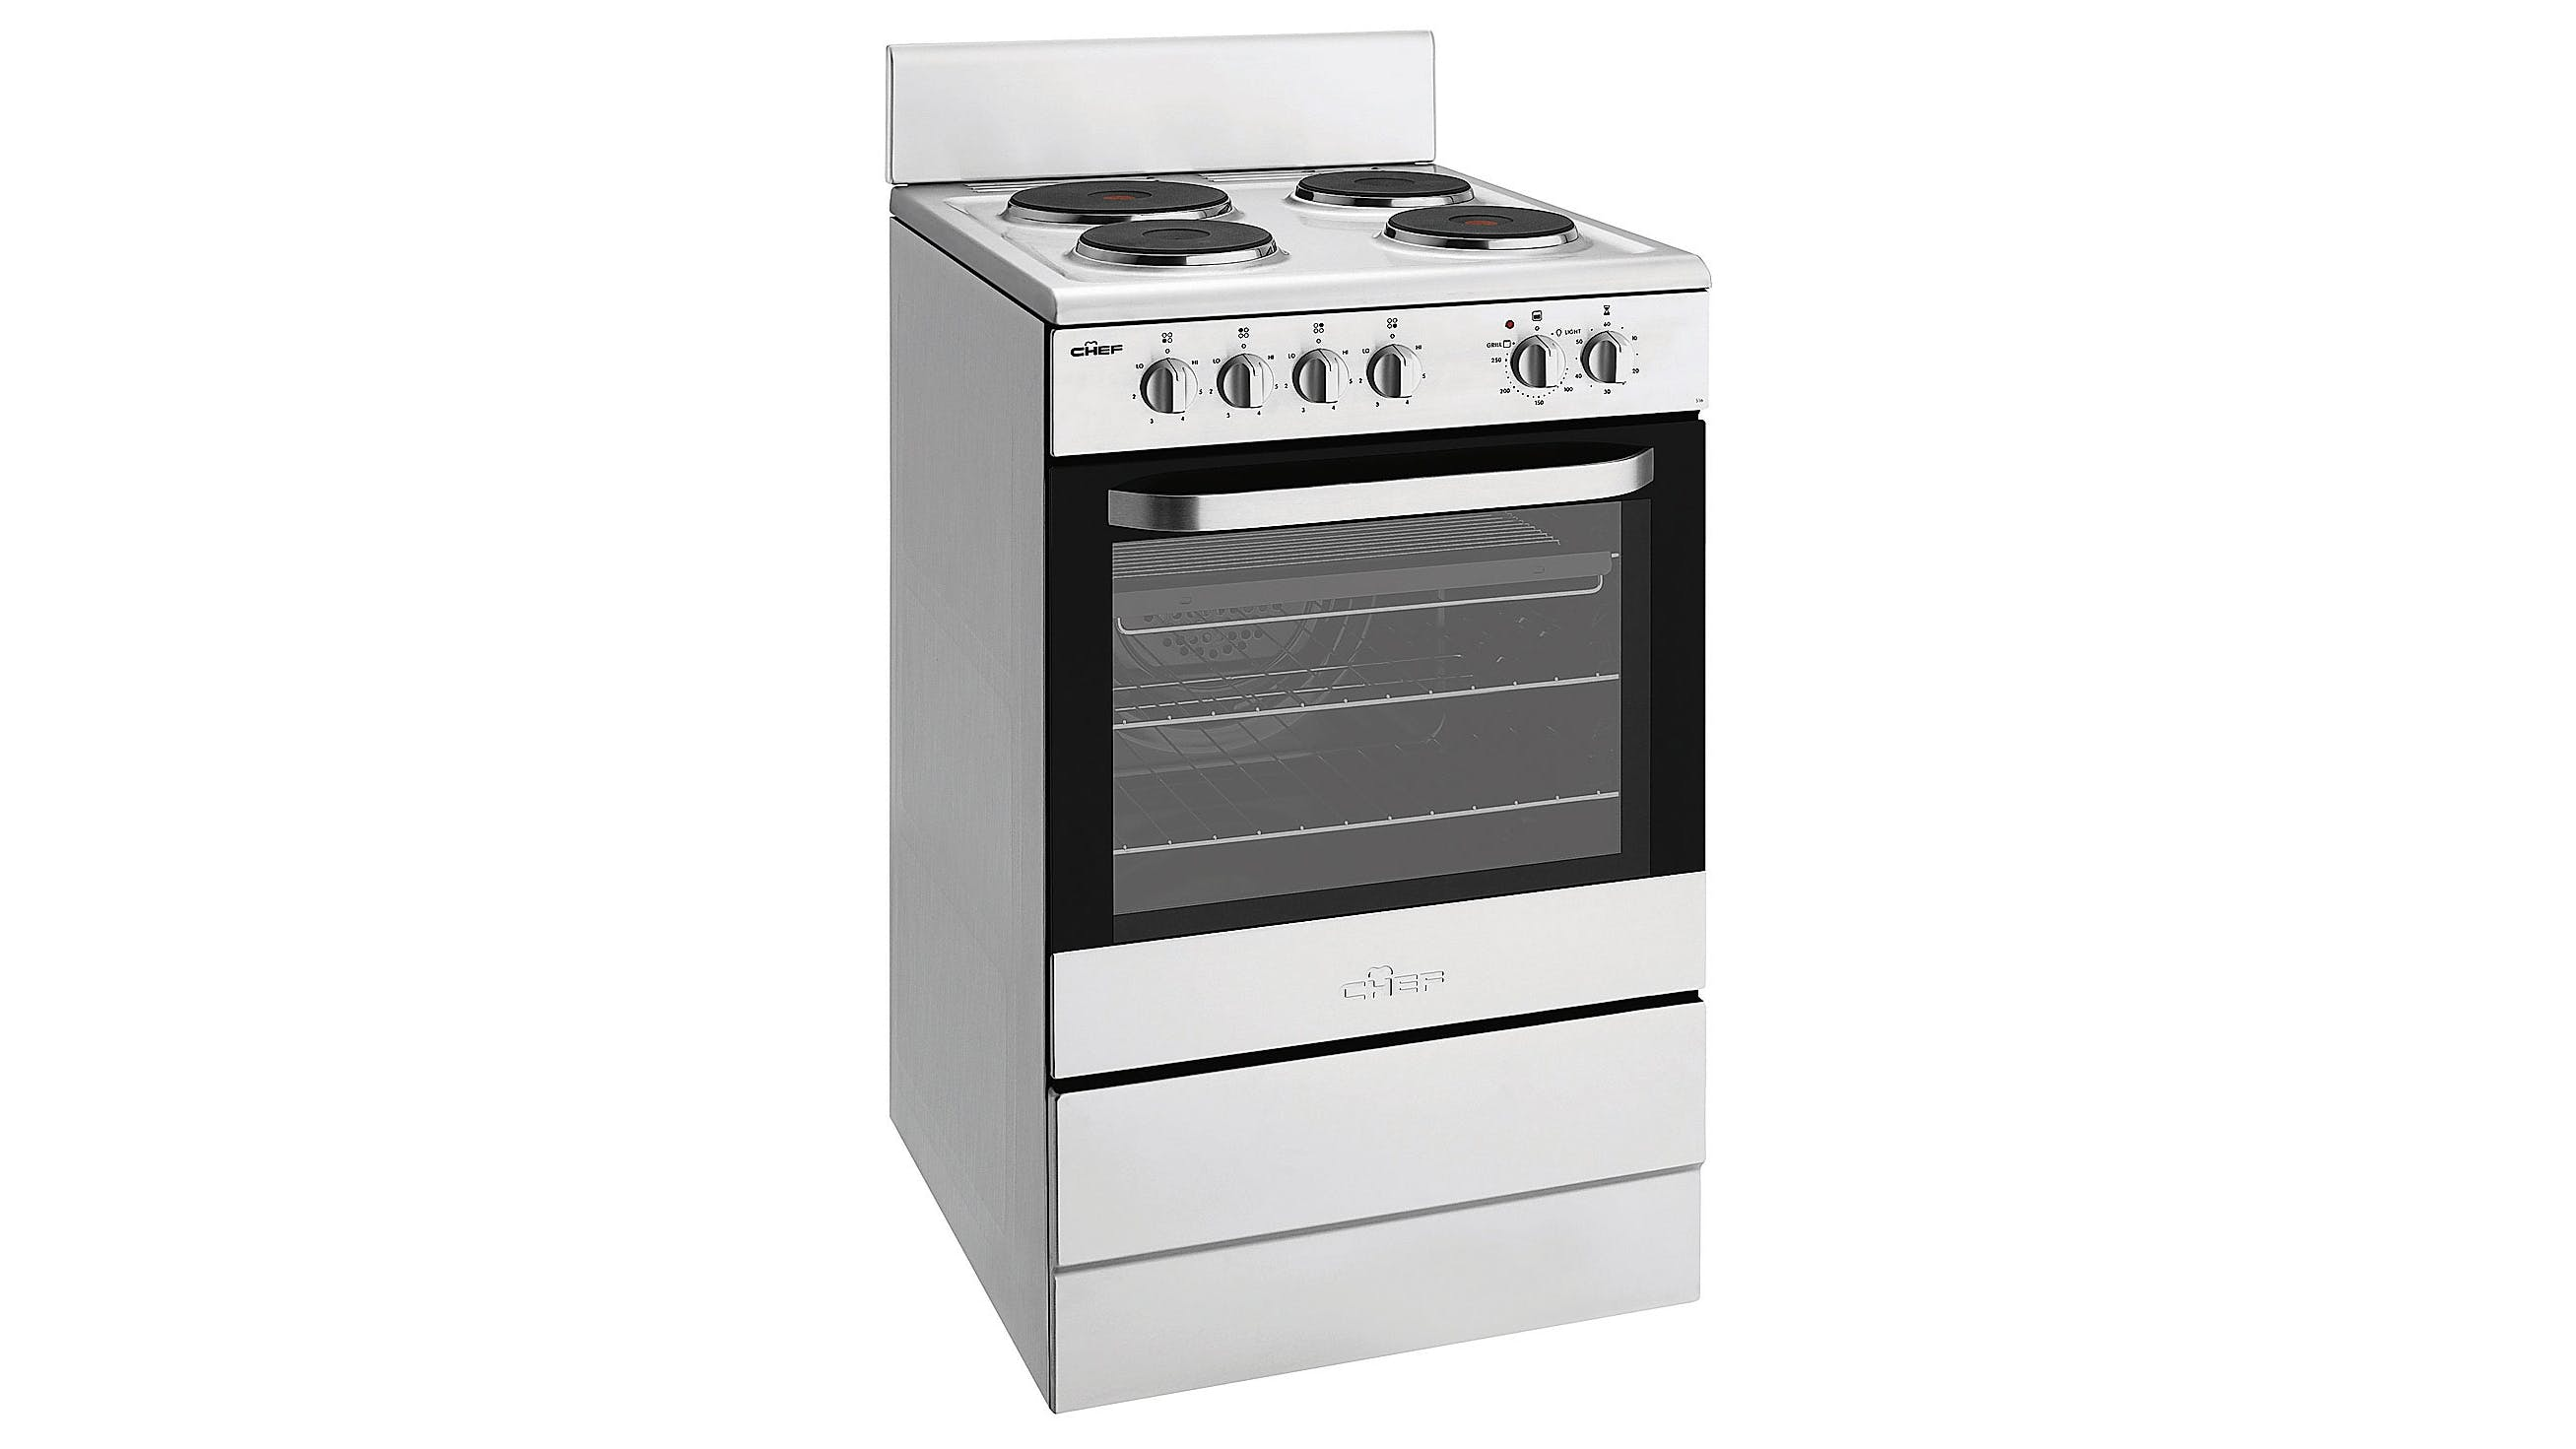 Uncategorized Domayne Kitchen Appliances chef 54cm freestanding electric cooker with fan forced oven domayne oven